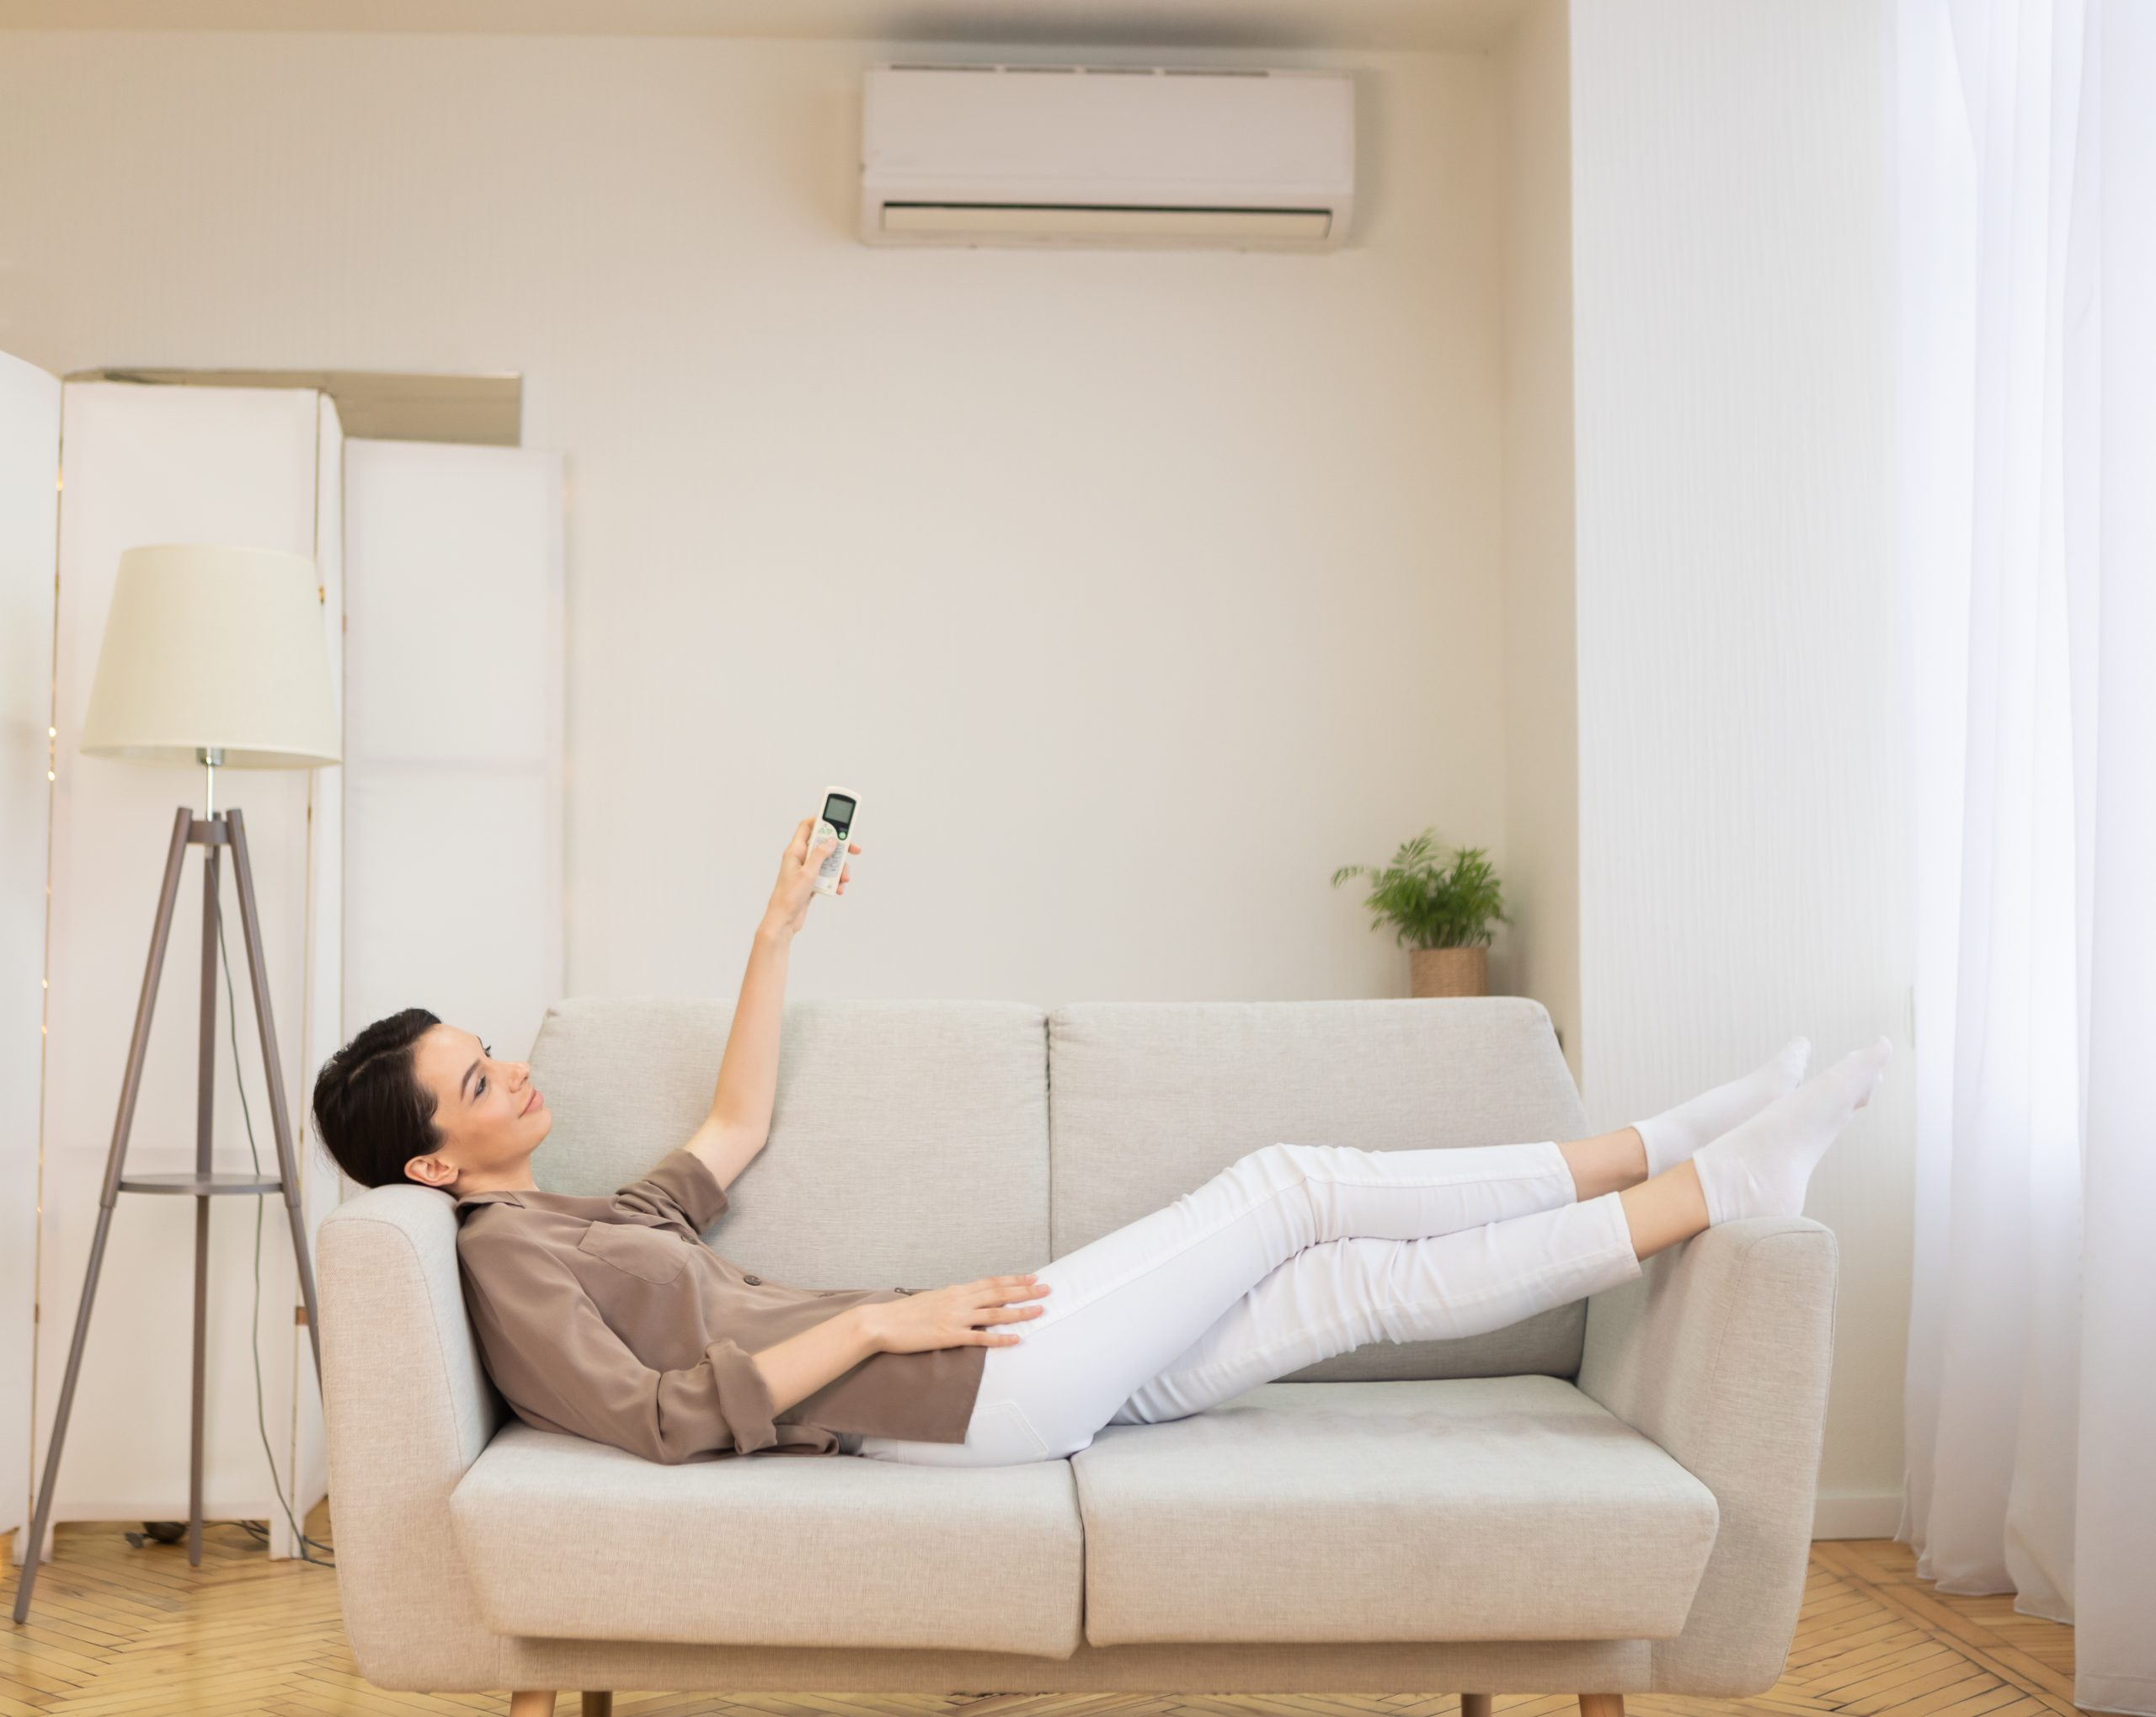 Time for an AC Upgrade? Consider a Mitsubishi Air Conditioning System